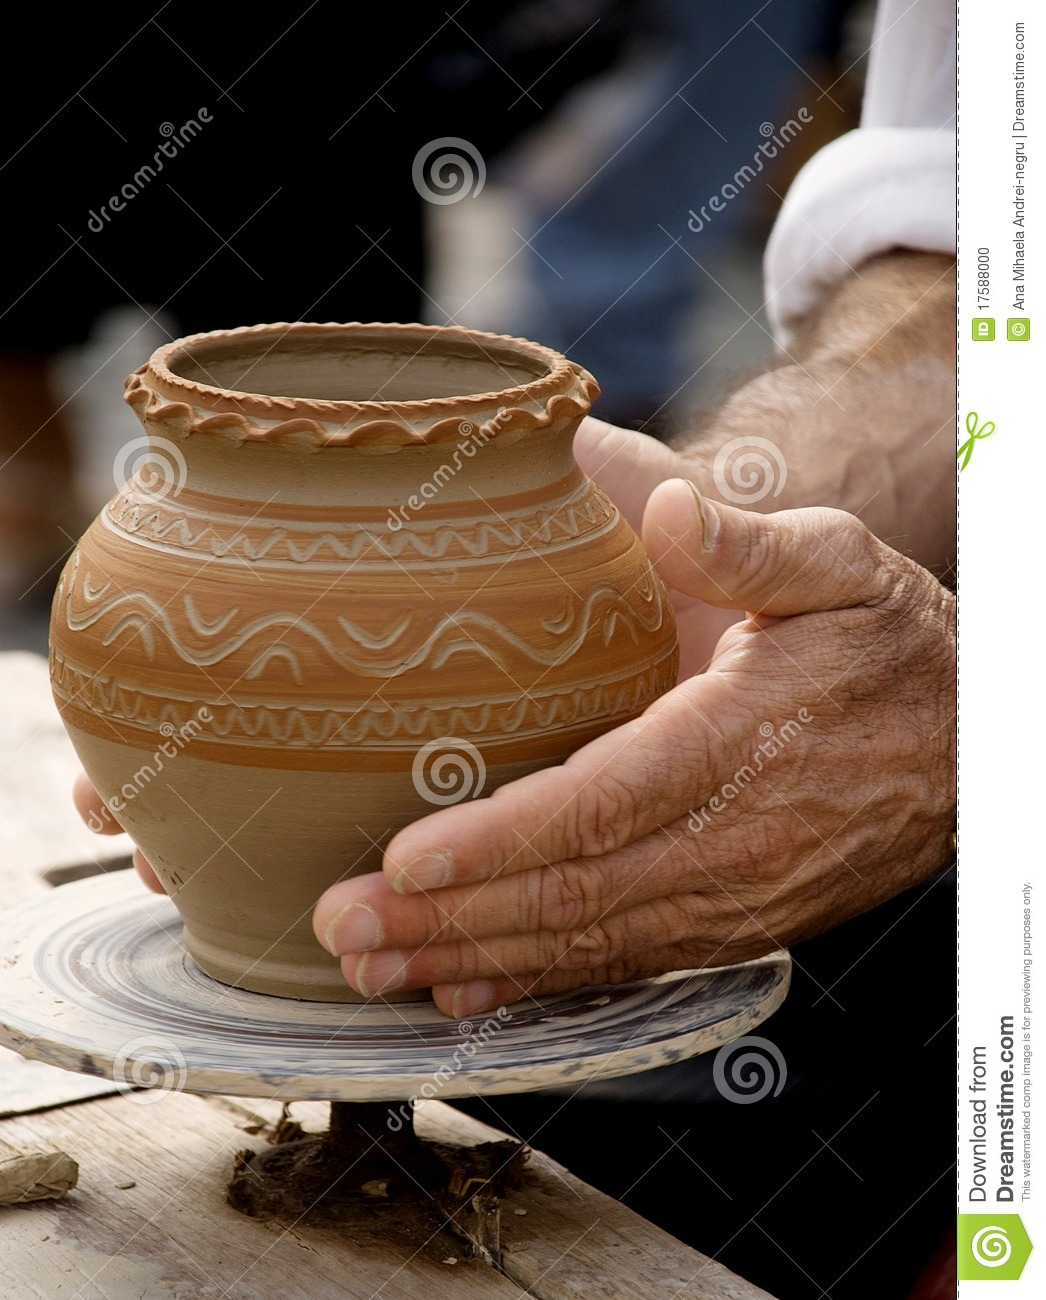 Making traditional pottery stock photo image 17588000 for Ceramica fabricacion